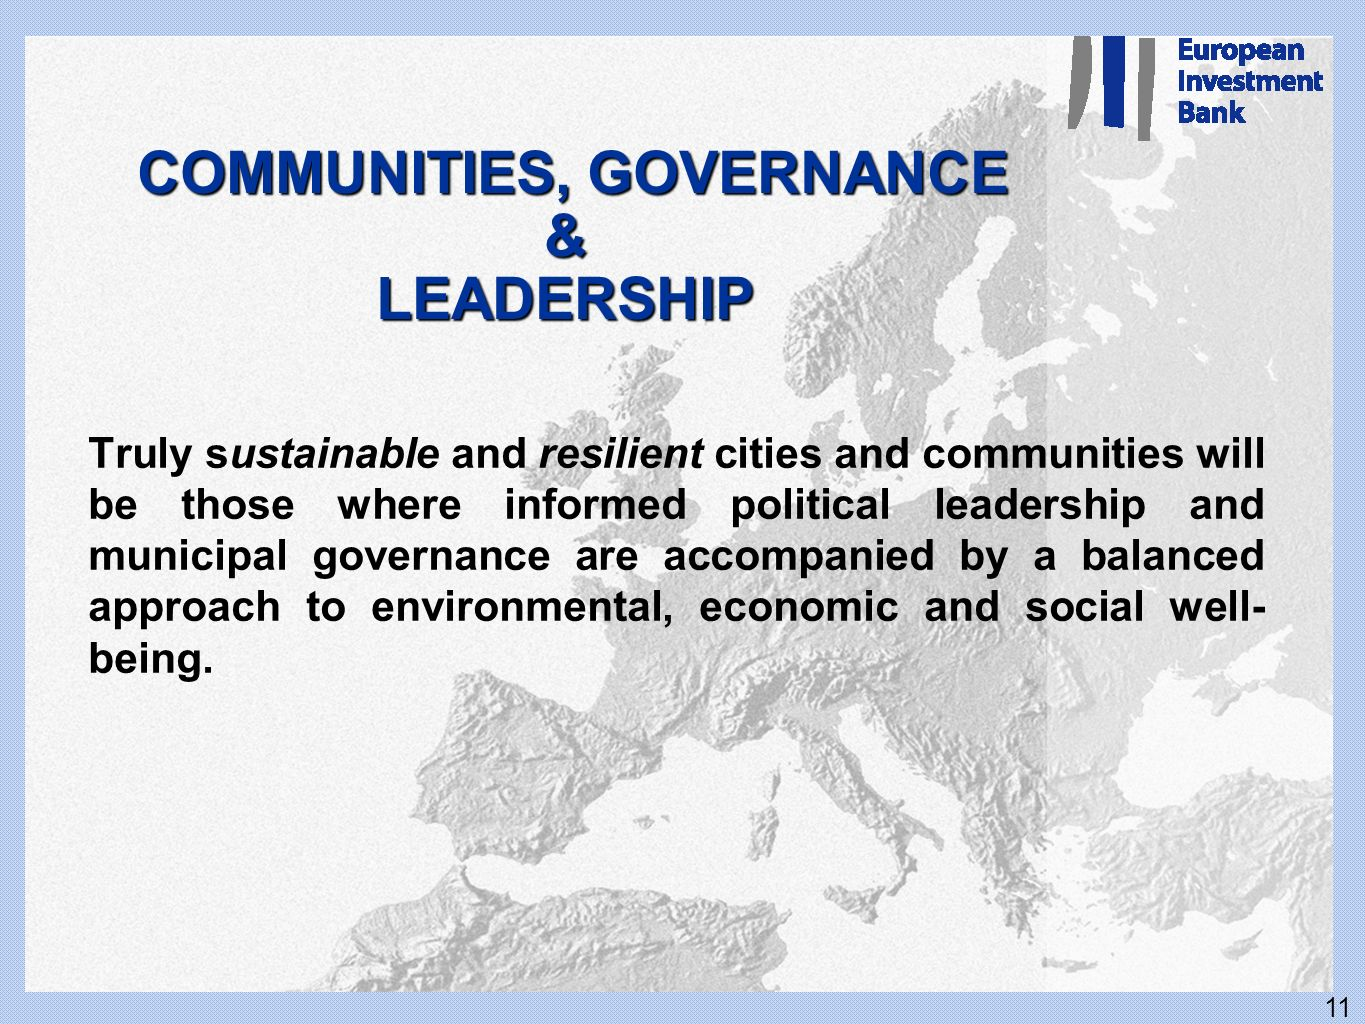 COMMUNITIES, GOVERNANCE & LEADERSHIP